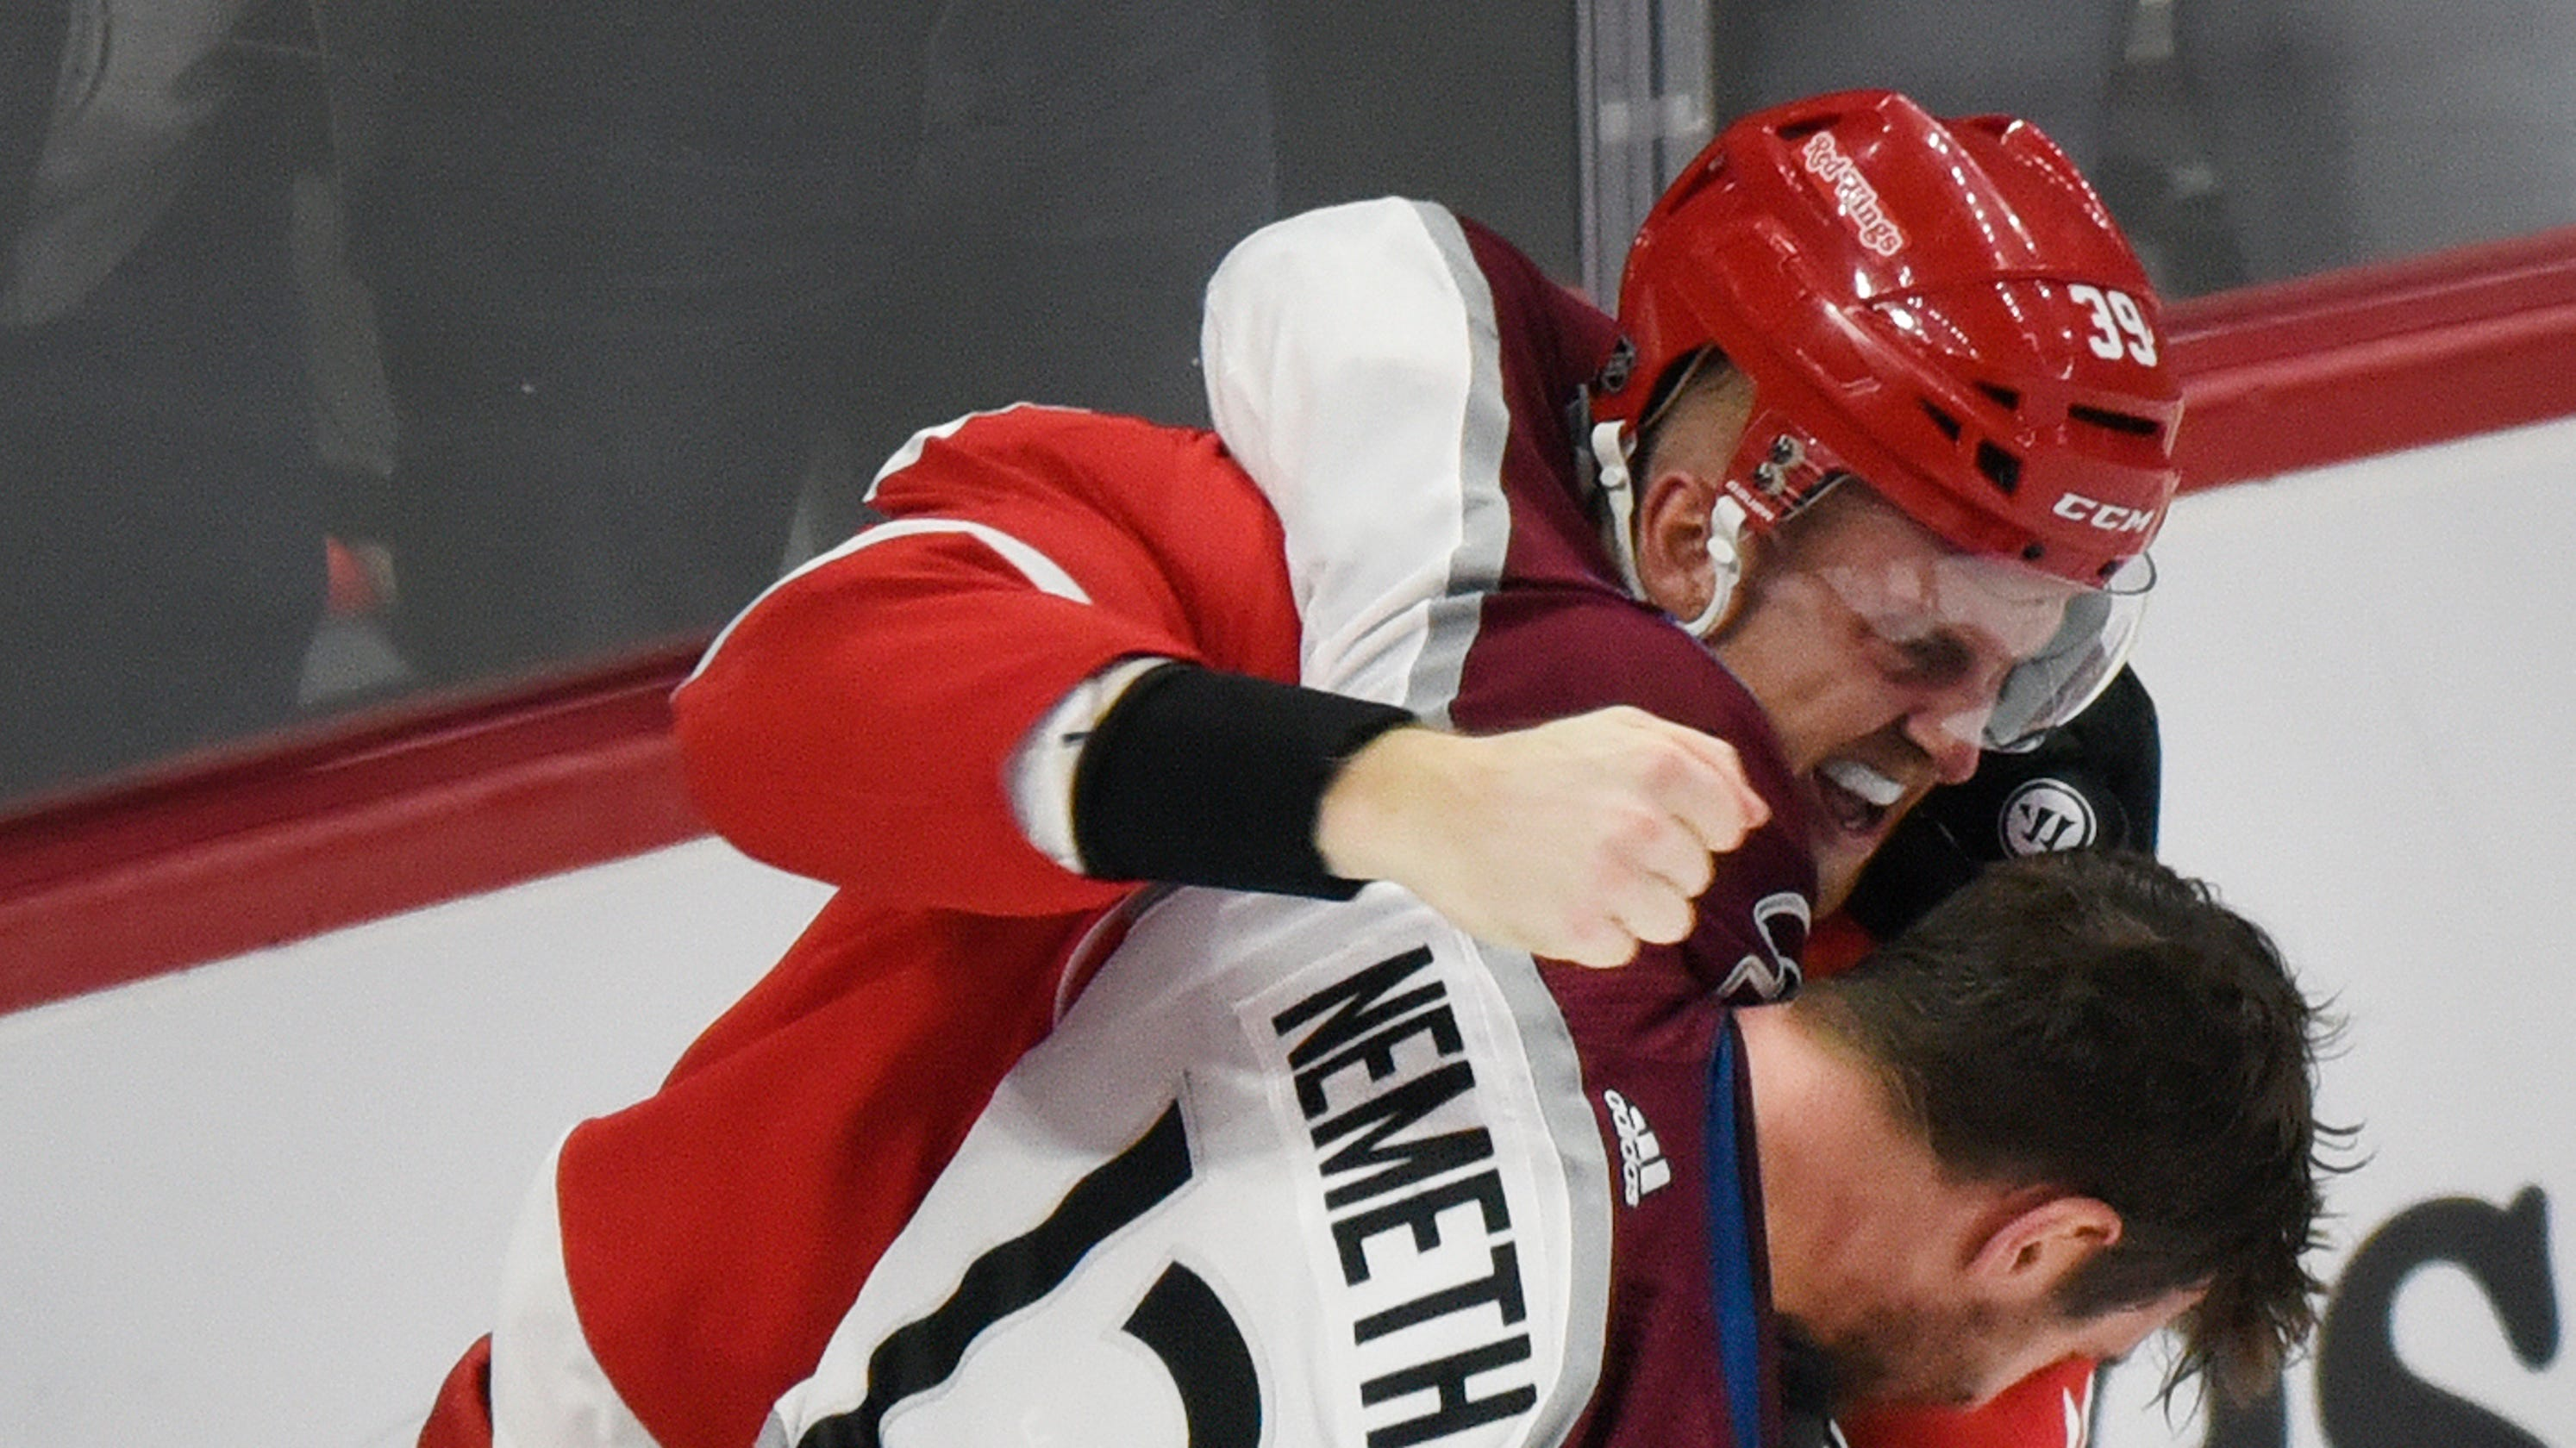 Detroit Red Wings lose to Avalanche, but win both fights